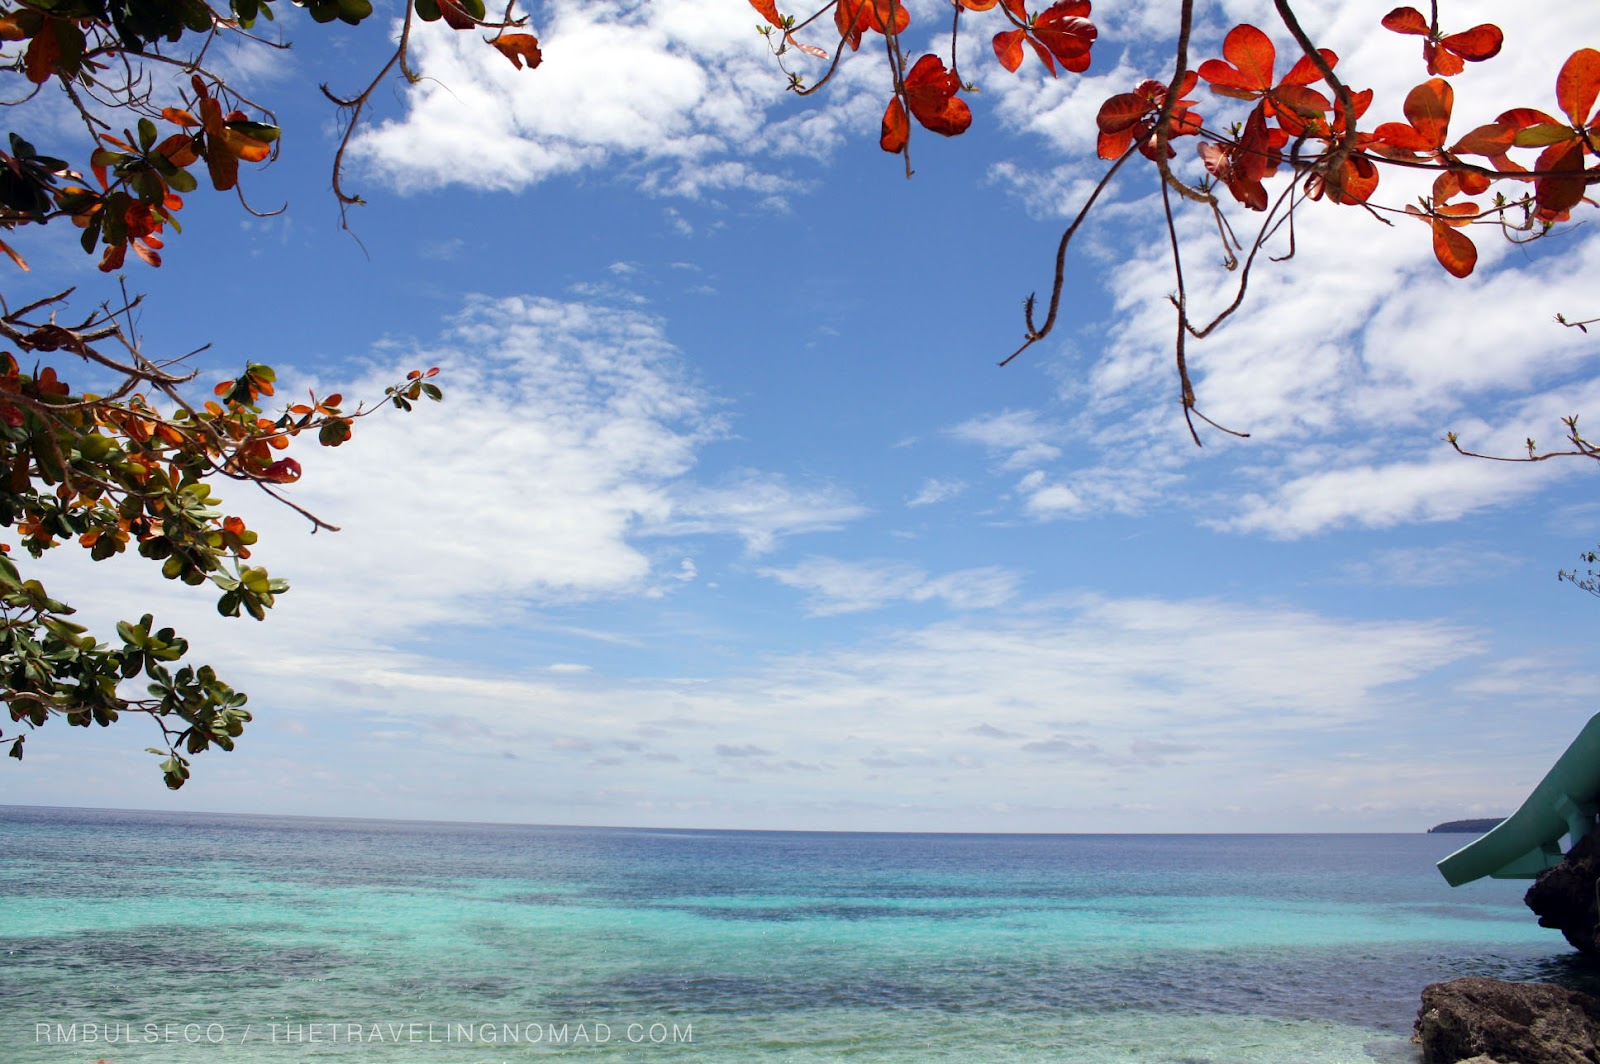 Salagdoong Beach, Siquijor